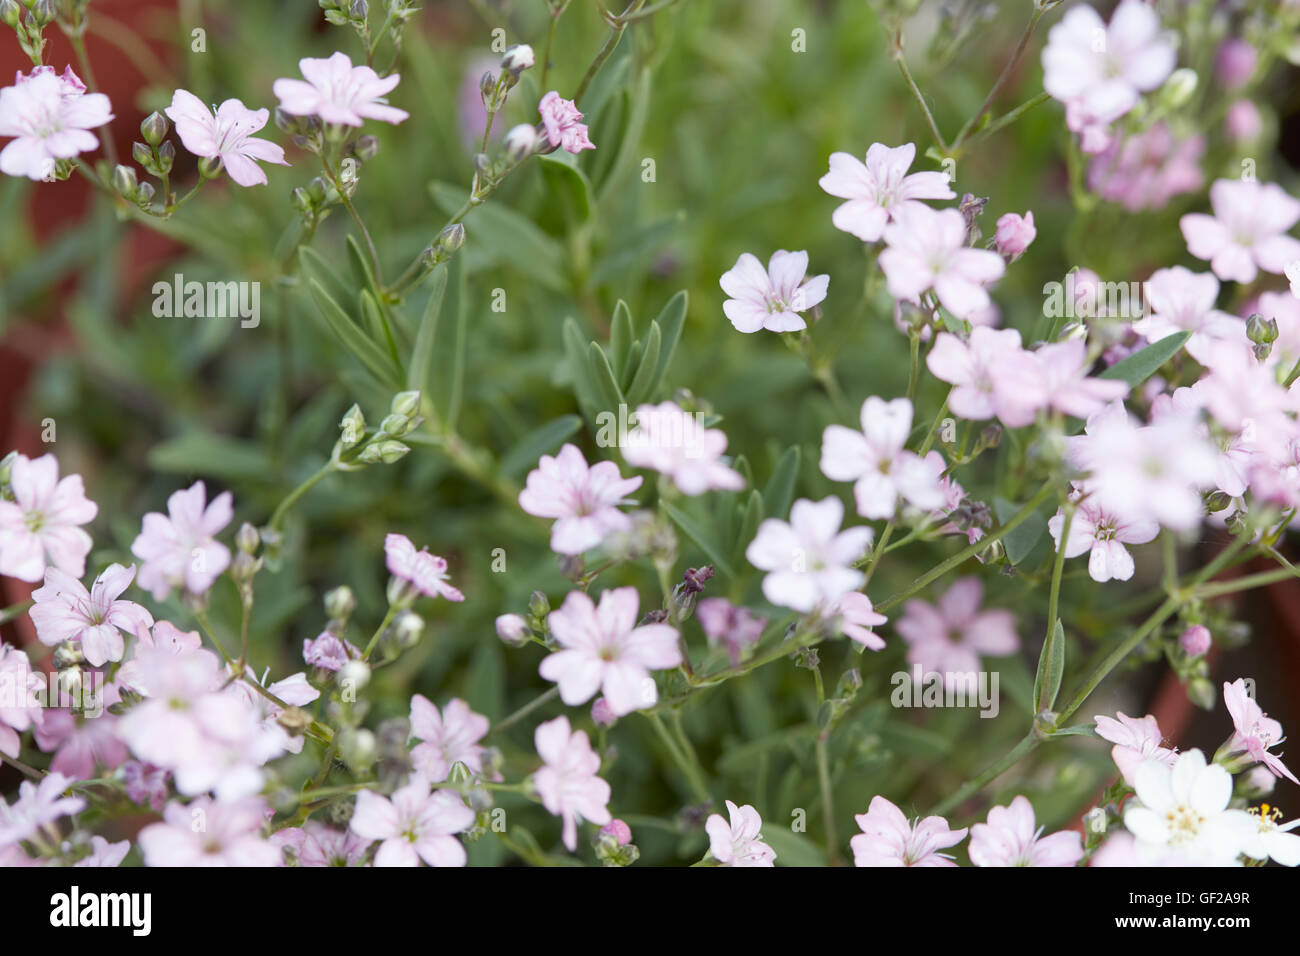 Babys breath stock photos babys breath stock images alamy gypsophila repens or babys breath pink little flowers stock image mightylinksfo